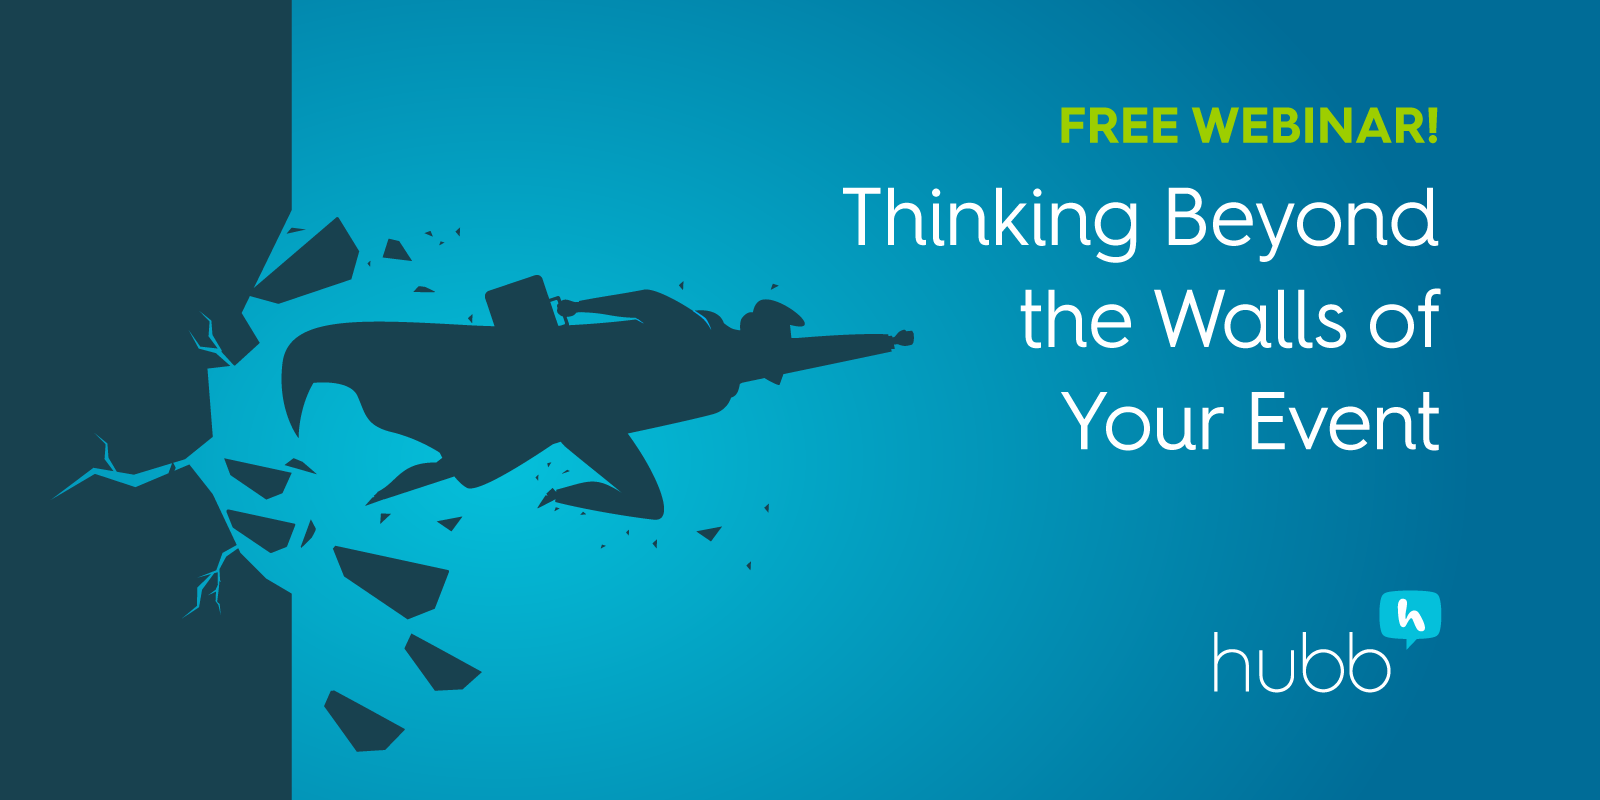 [Webinar] Thinking Beyond the Walls of Your Event